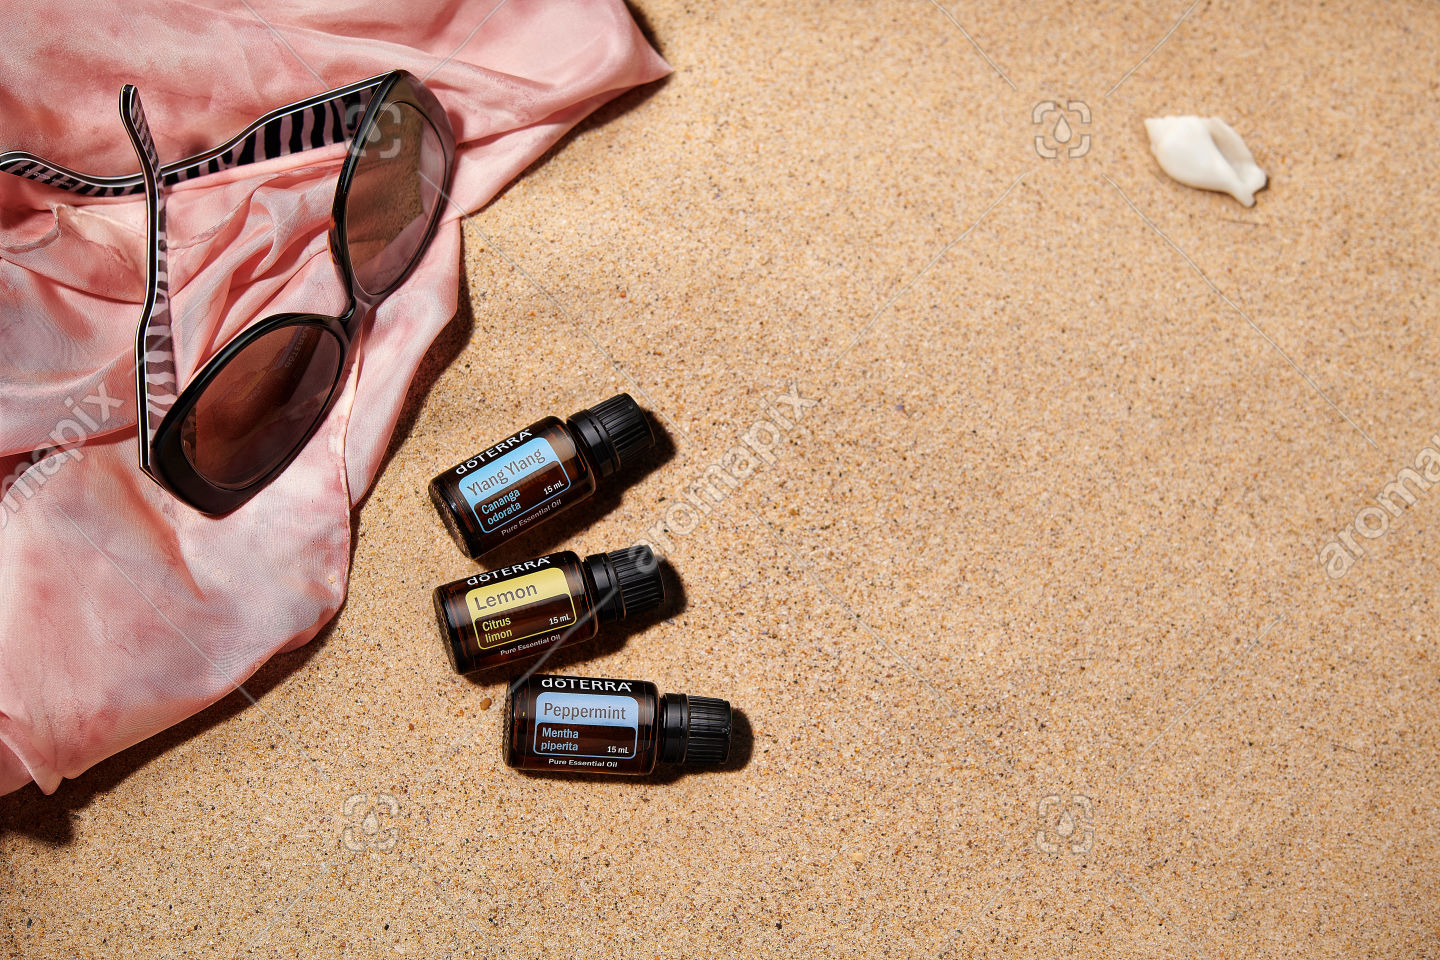 doTERRA Ylang Ylang, Lemon and Peppermint with accessories on sand